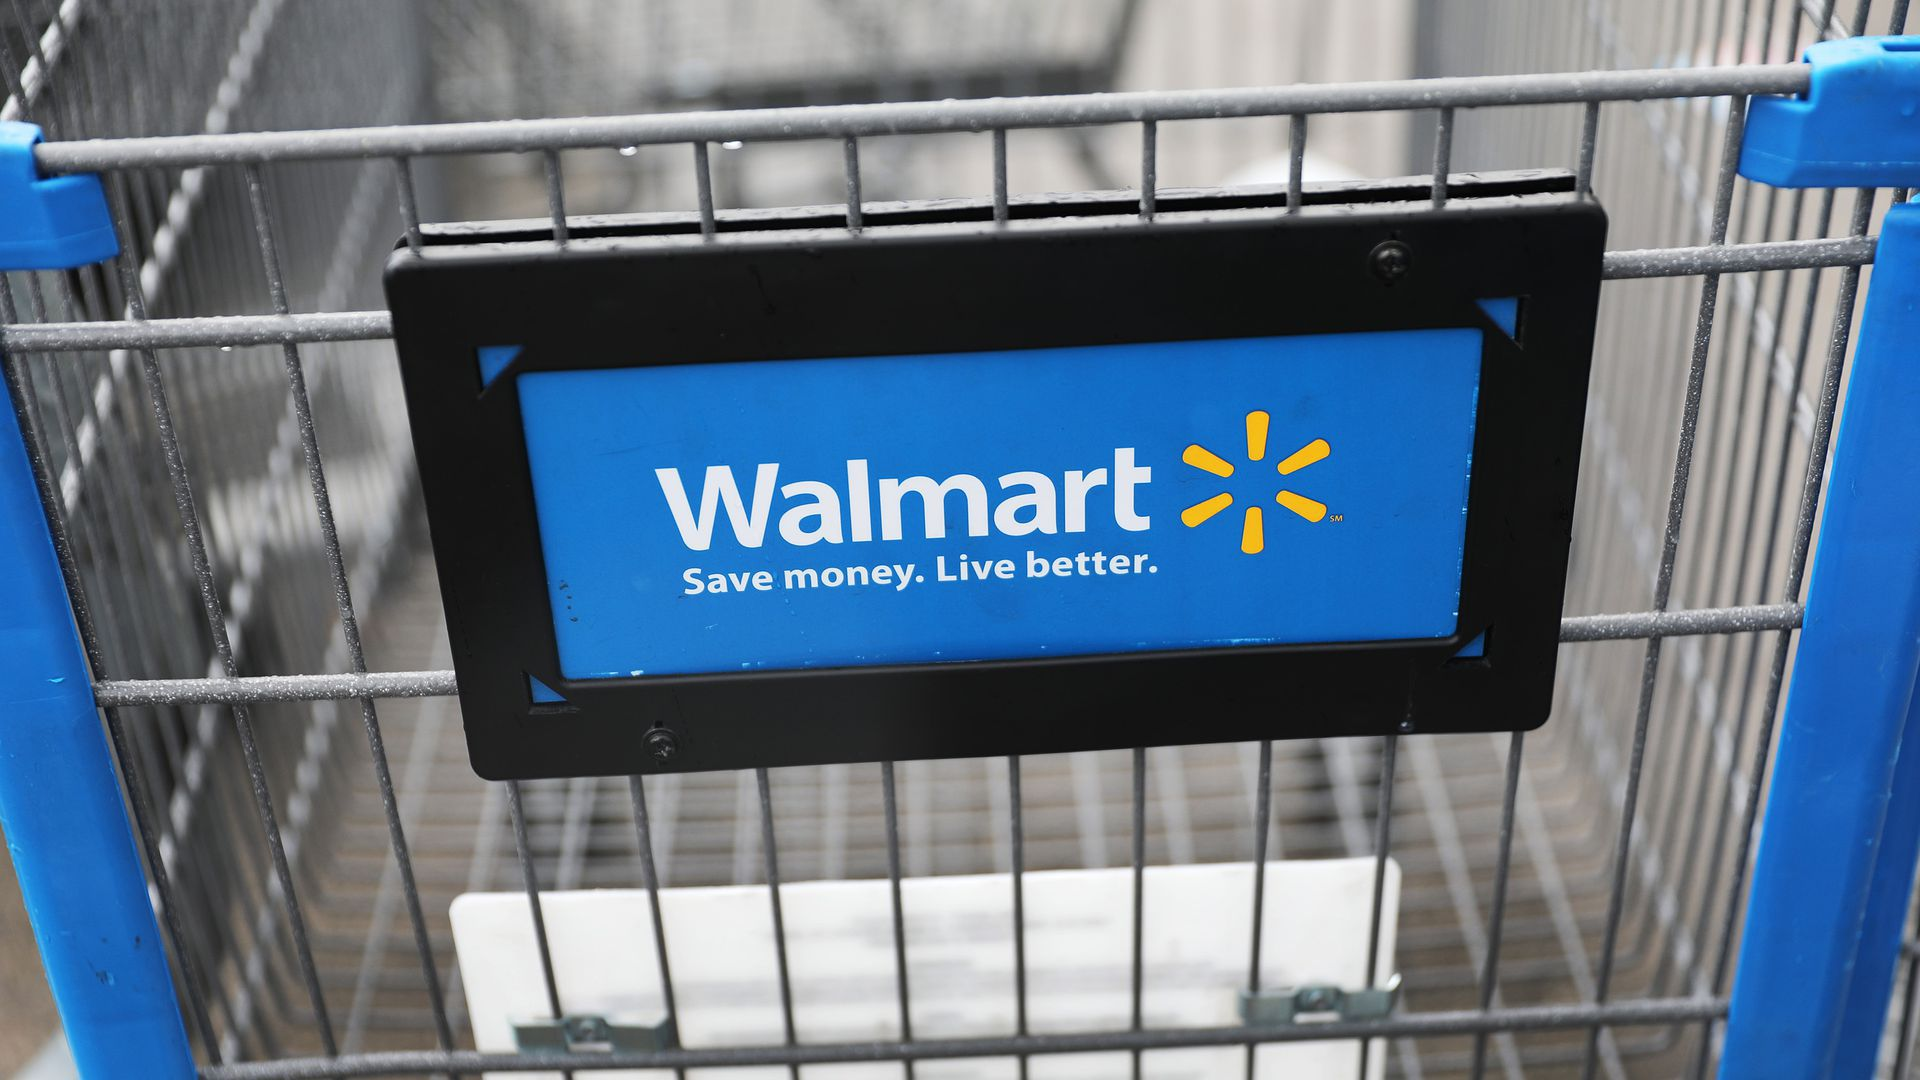 Walmart to expand its low-cost health care centers - Axios